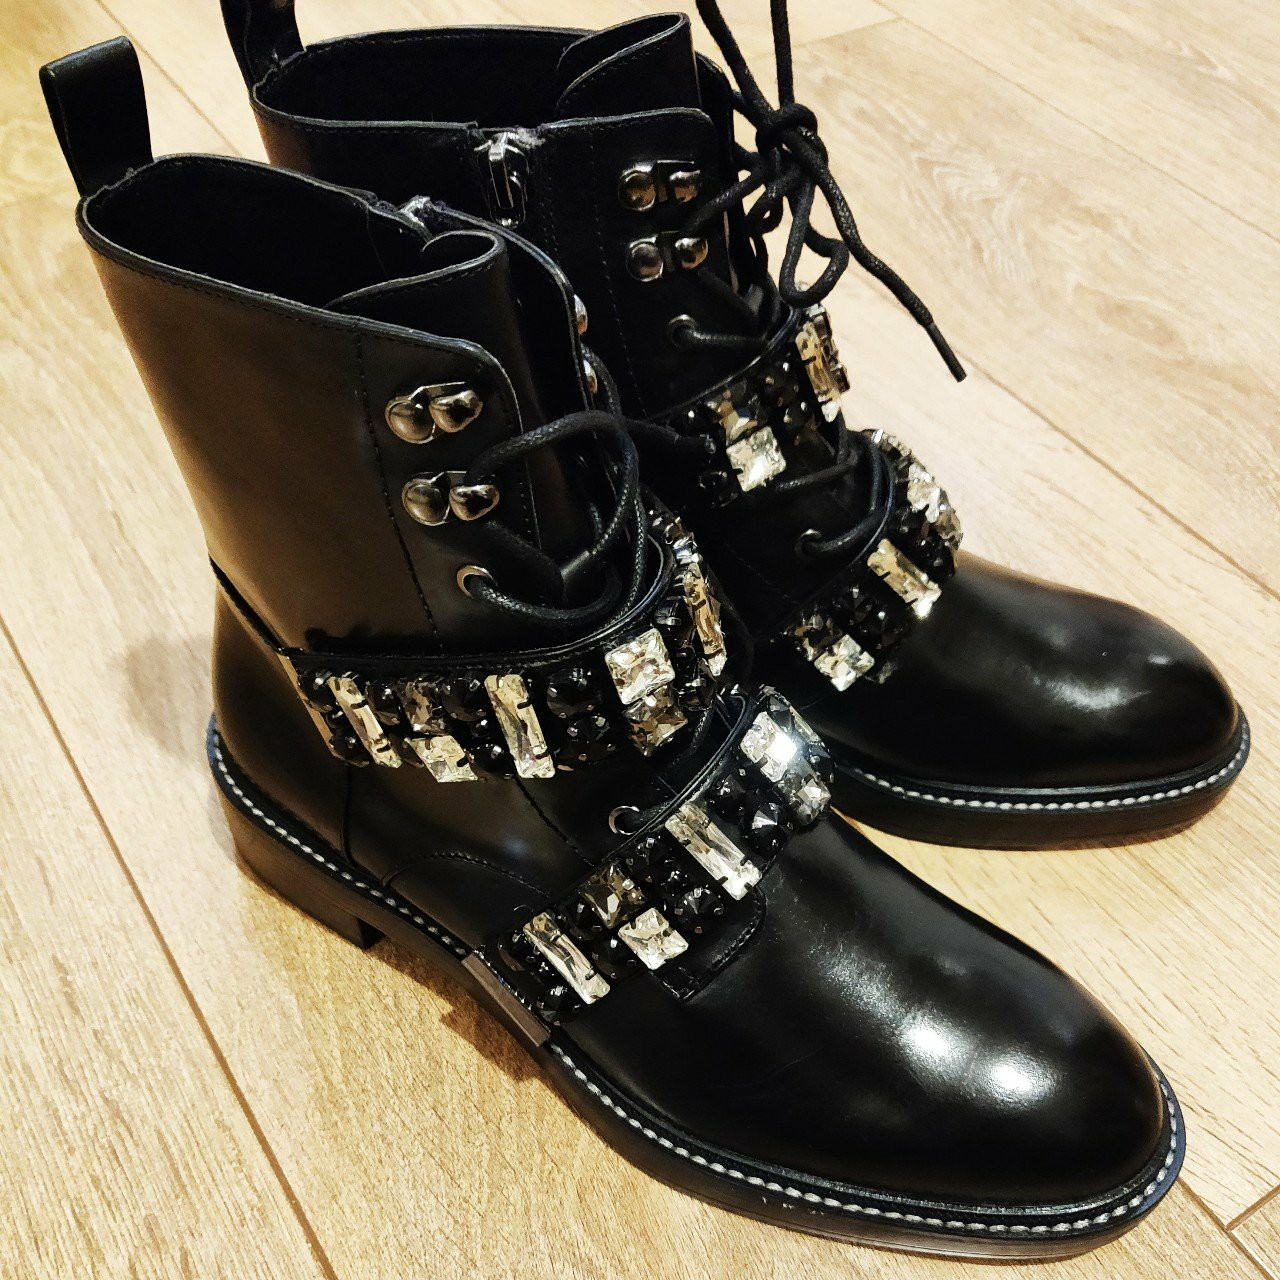 d4d6a7d206c Zara leather biker ankle boots with bejewelled... - Depop